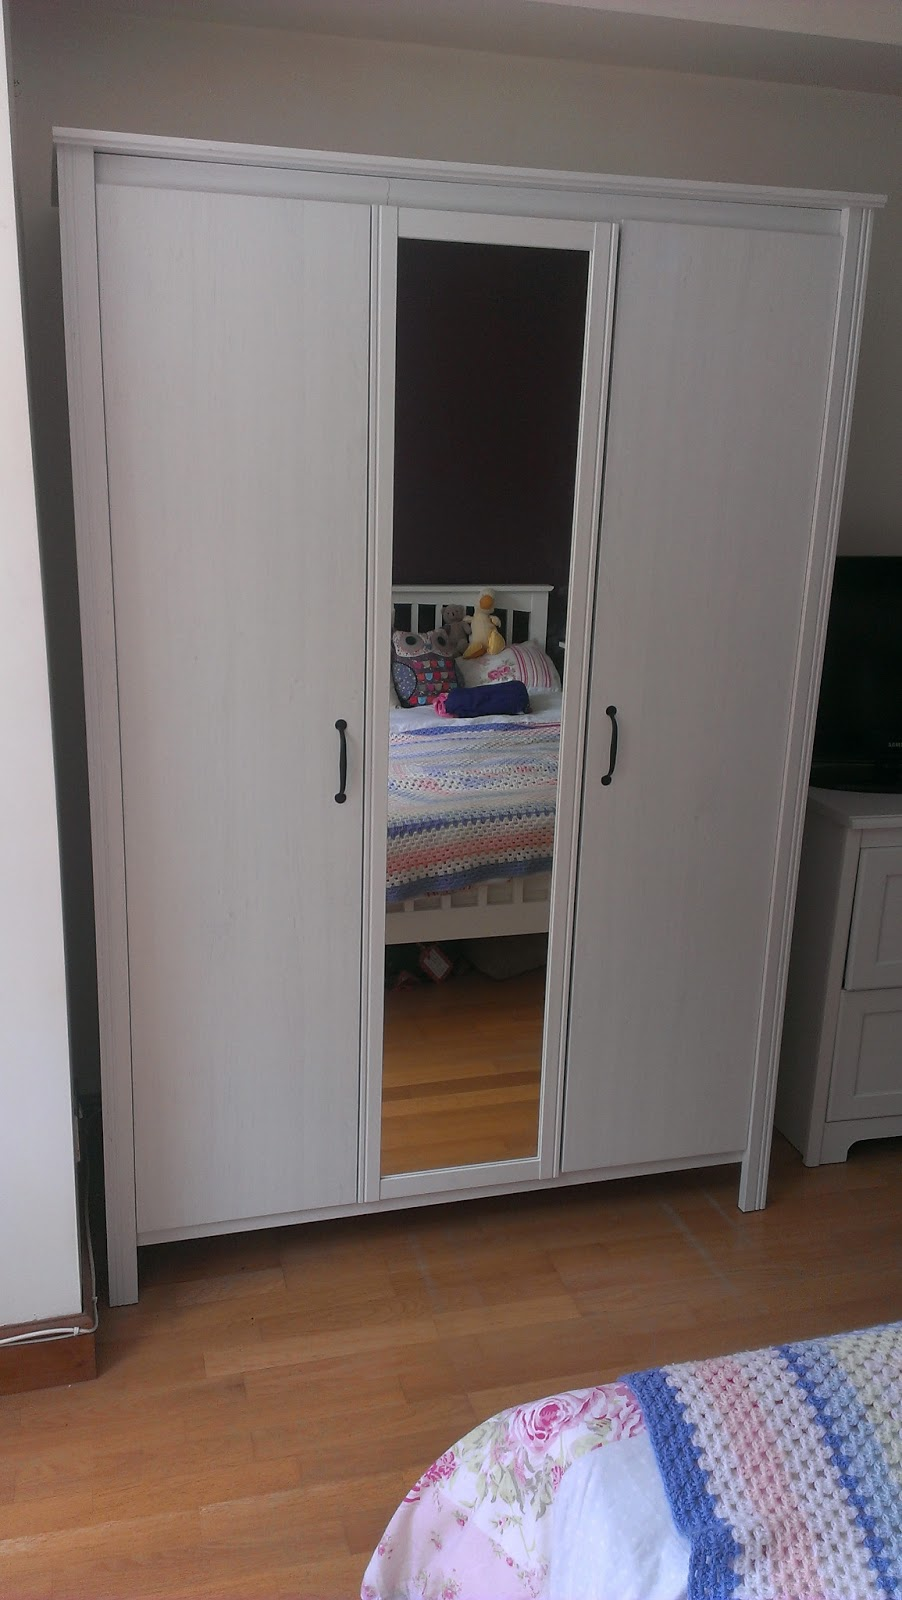 ikea aspelund wardrobe instructions